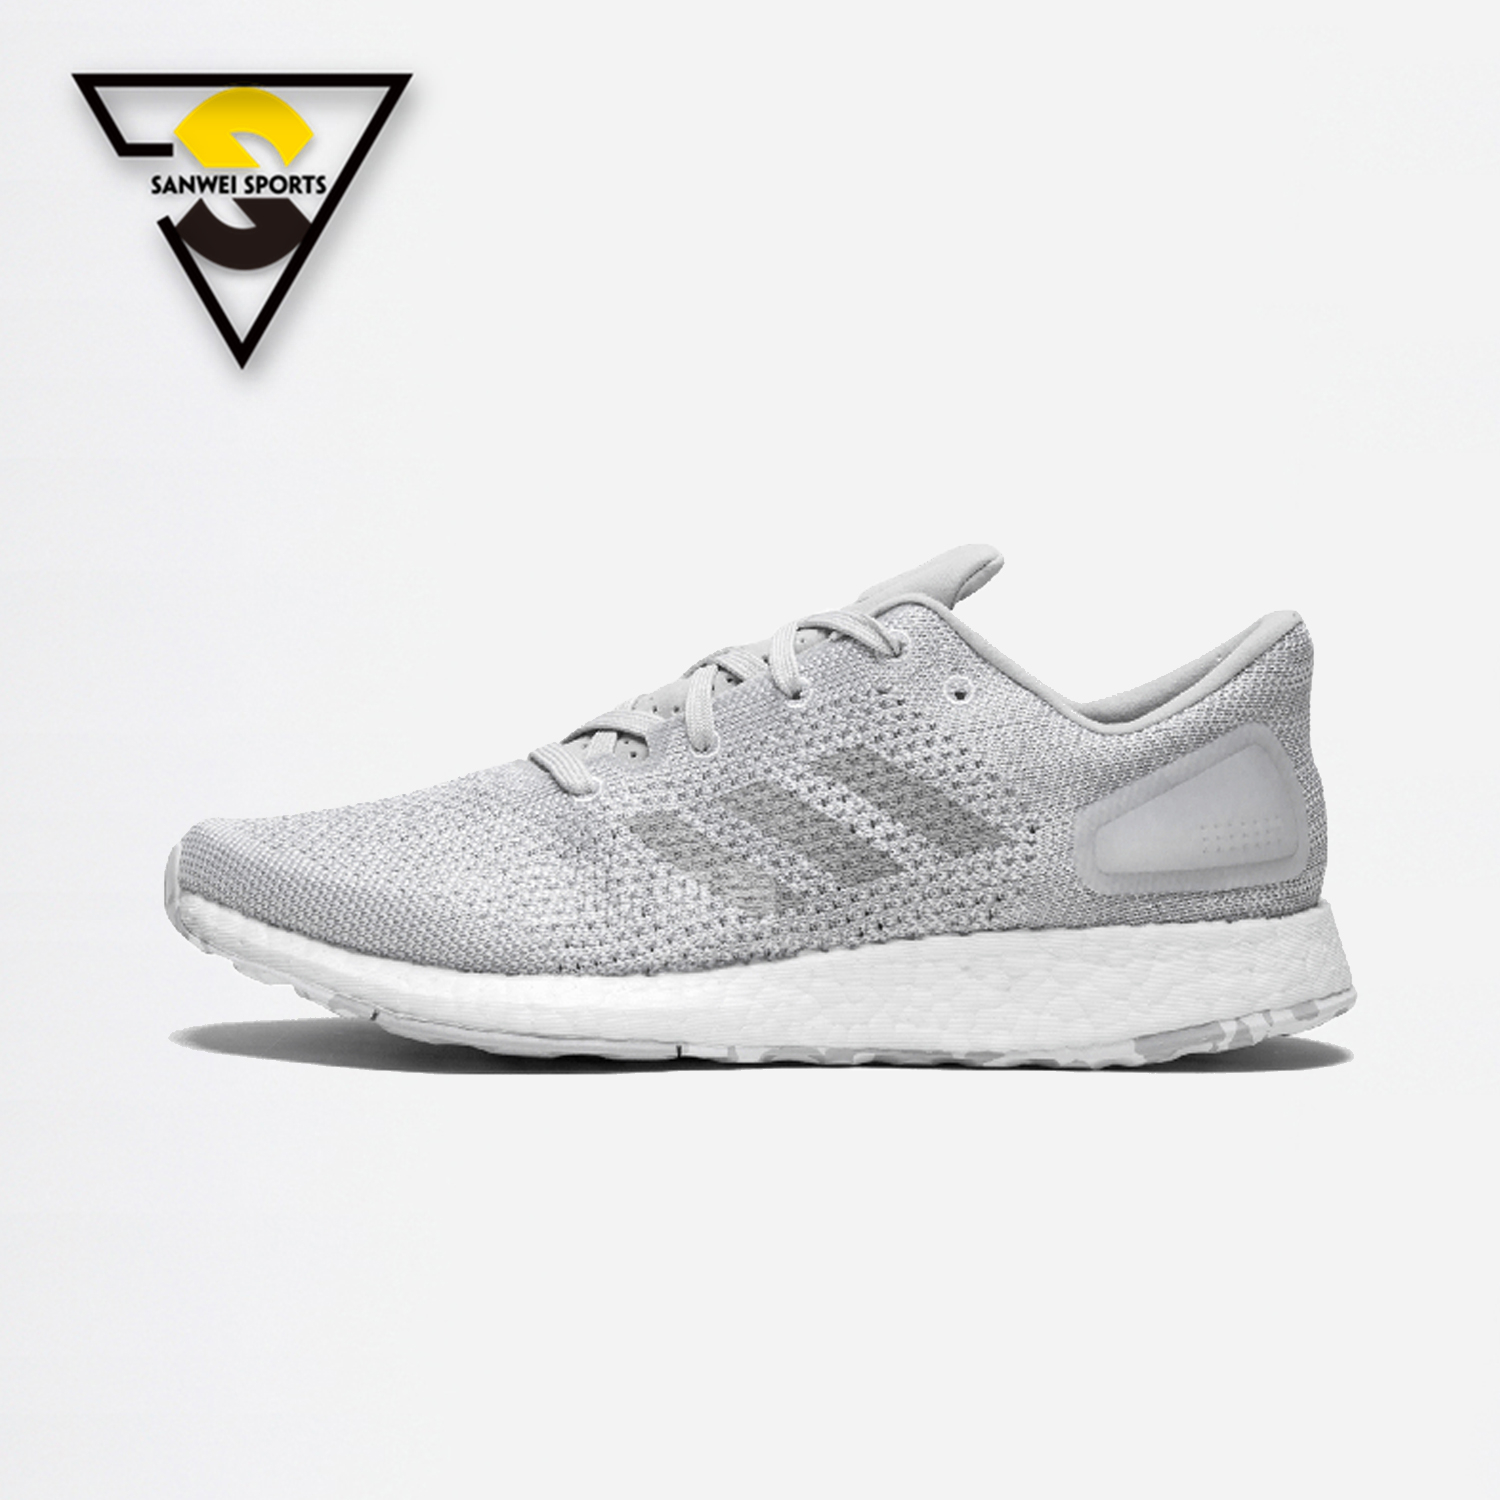 6c9444131c597 Adidas PURE BOOST DPR cushioning sports shoes S80993 82010 80734 S80733